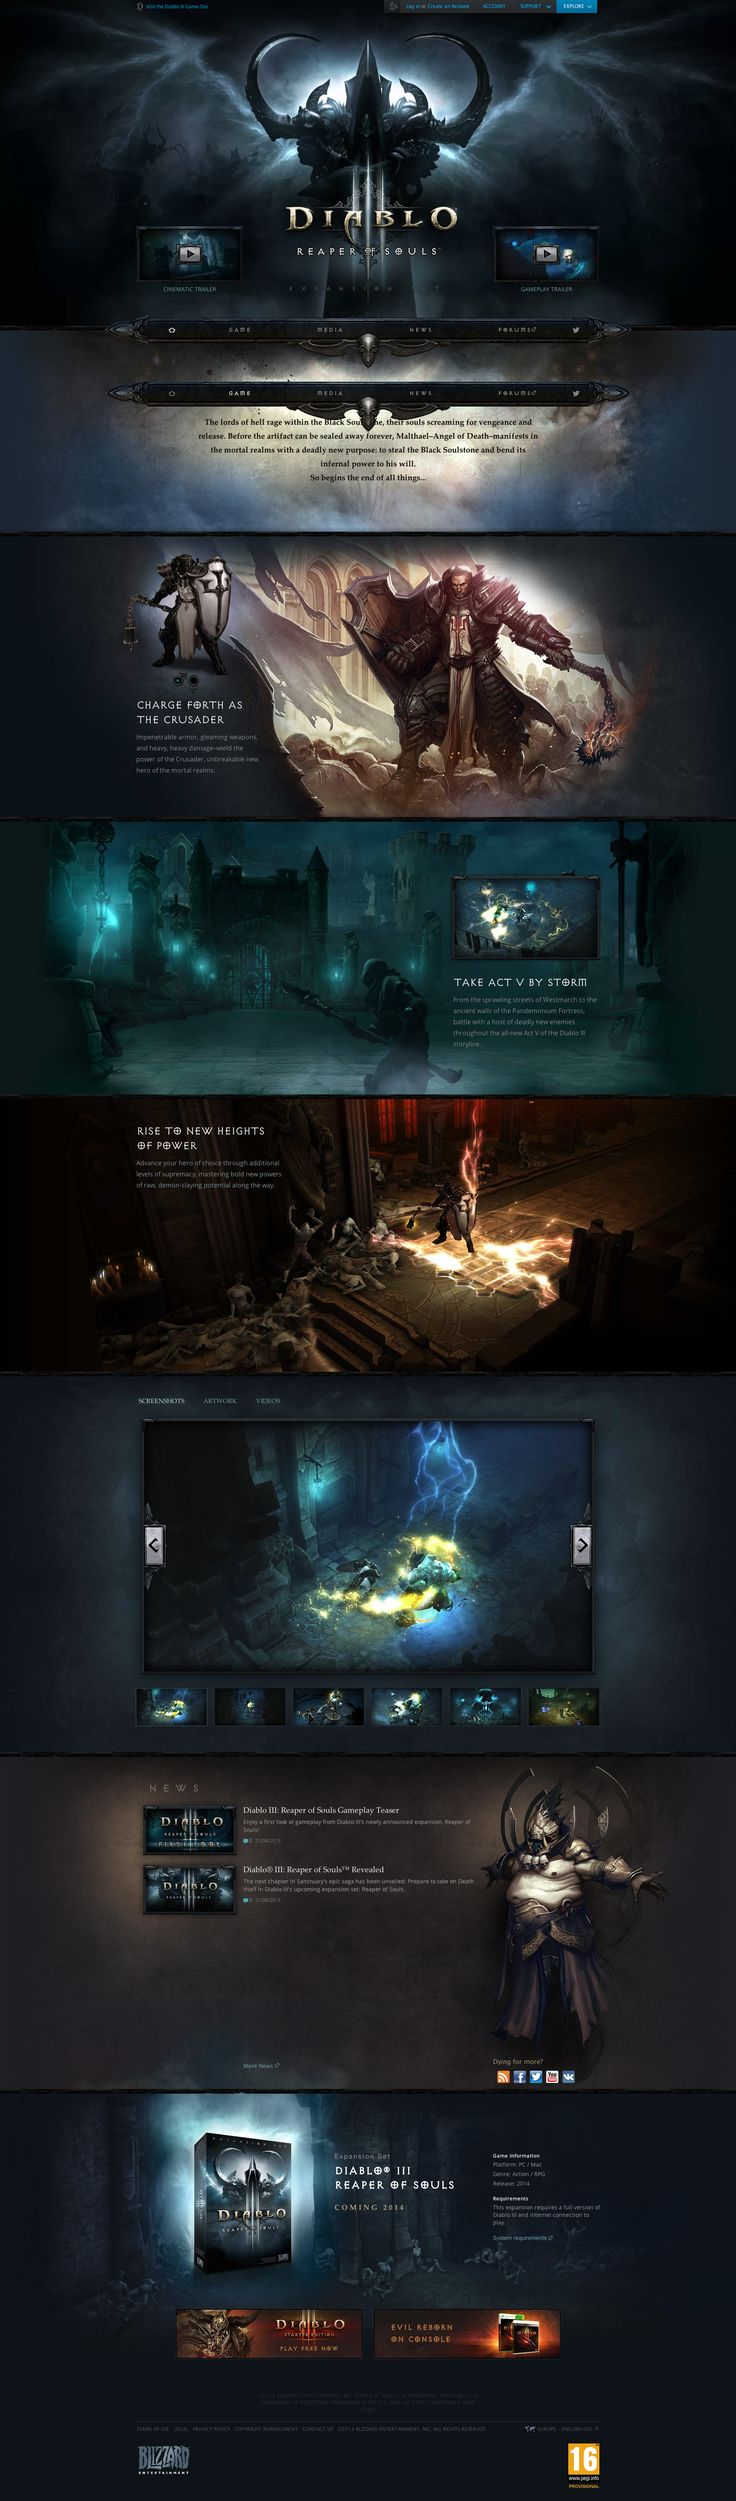 Cool Web Design on the Internet, Diablo III. #webdesign #webdevelopment #website @ http://www.pinterest.com/alfredchong/web-design/